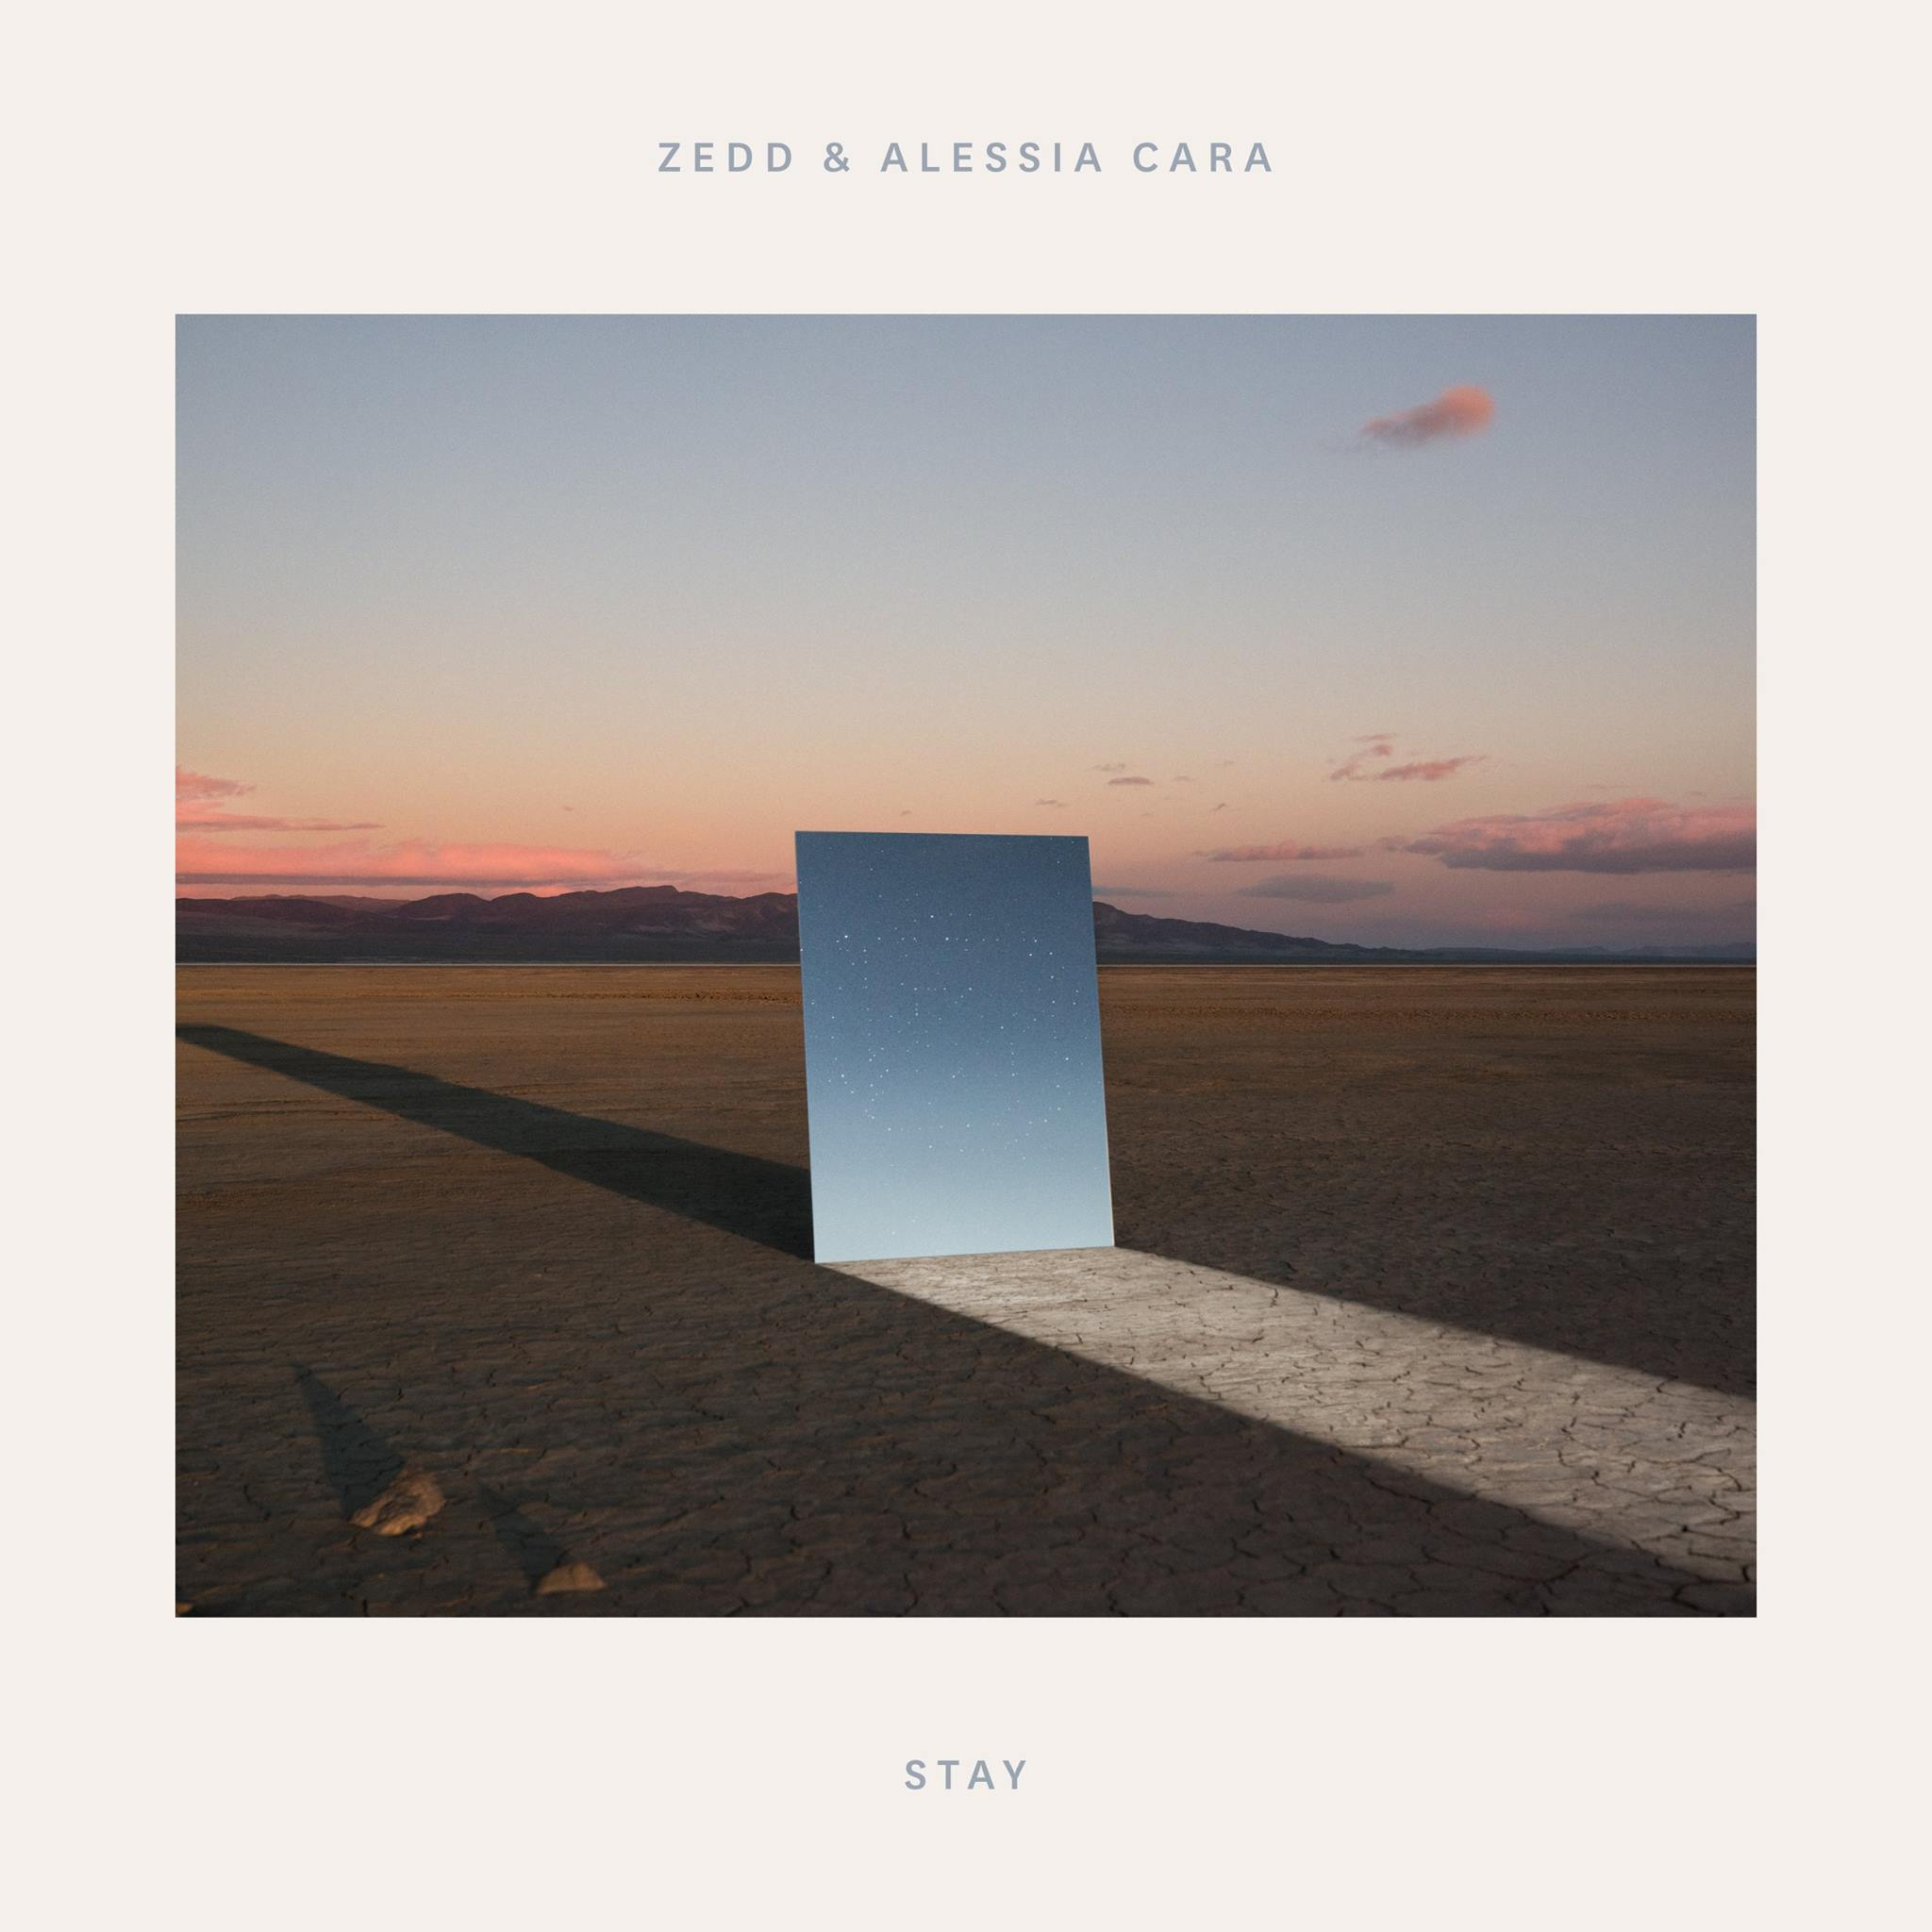 Track Review: Zedd & Alessia Cara, 'Stay'